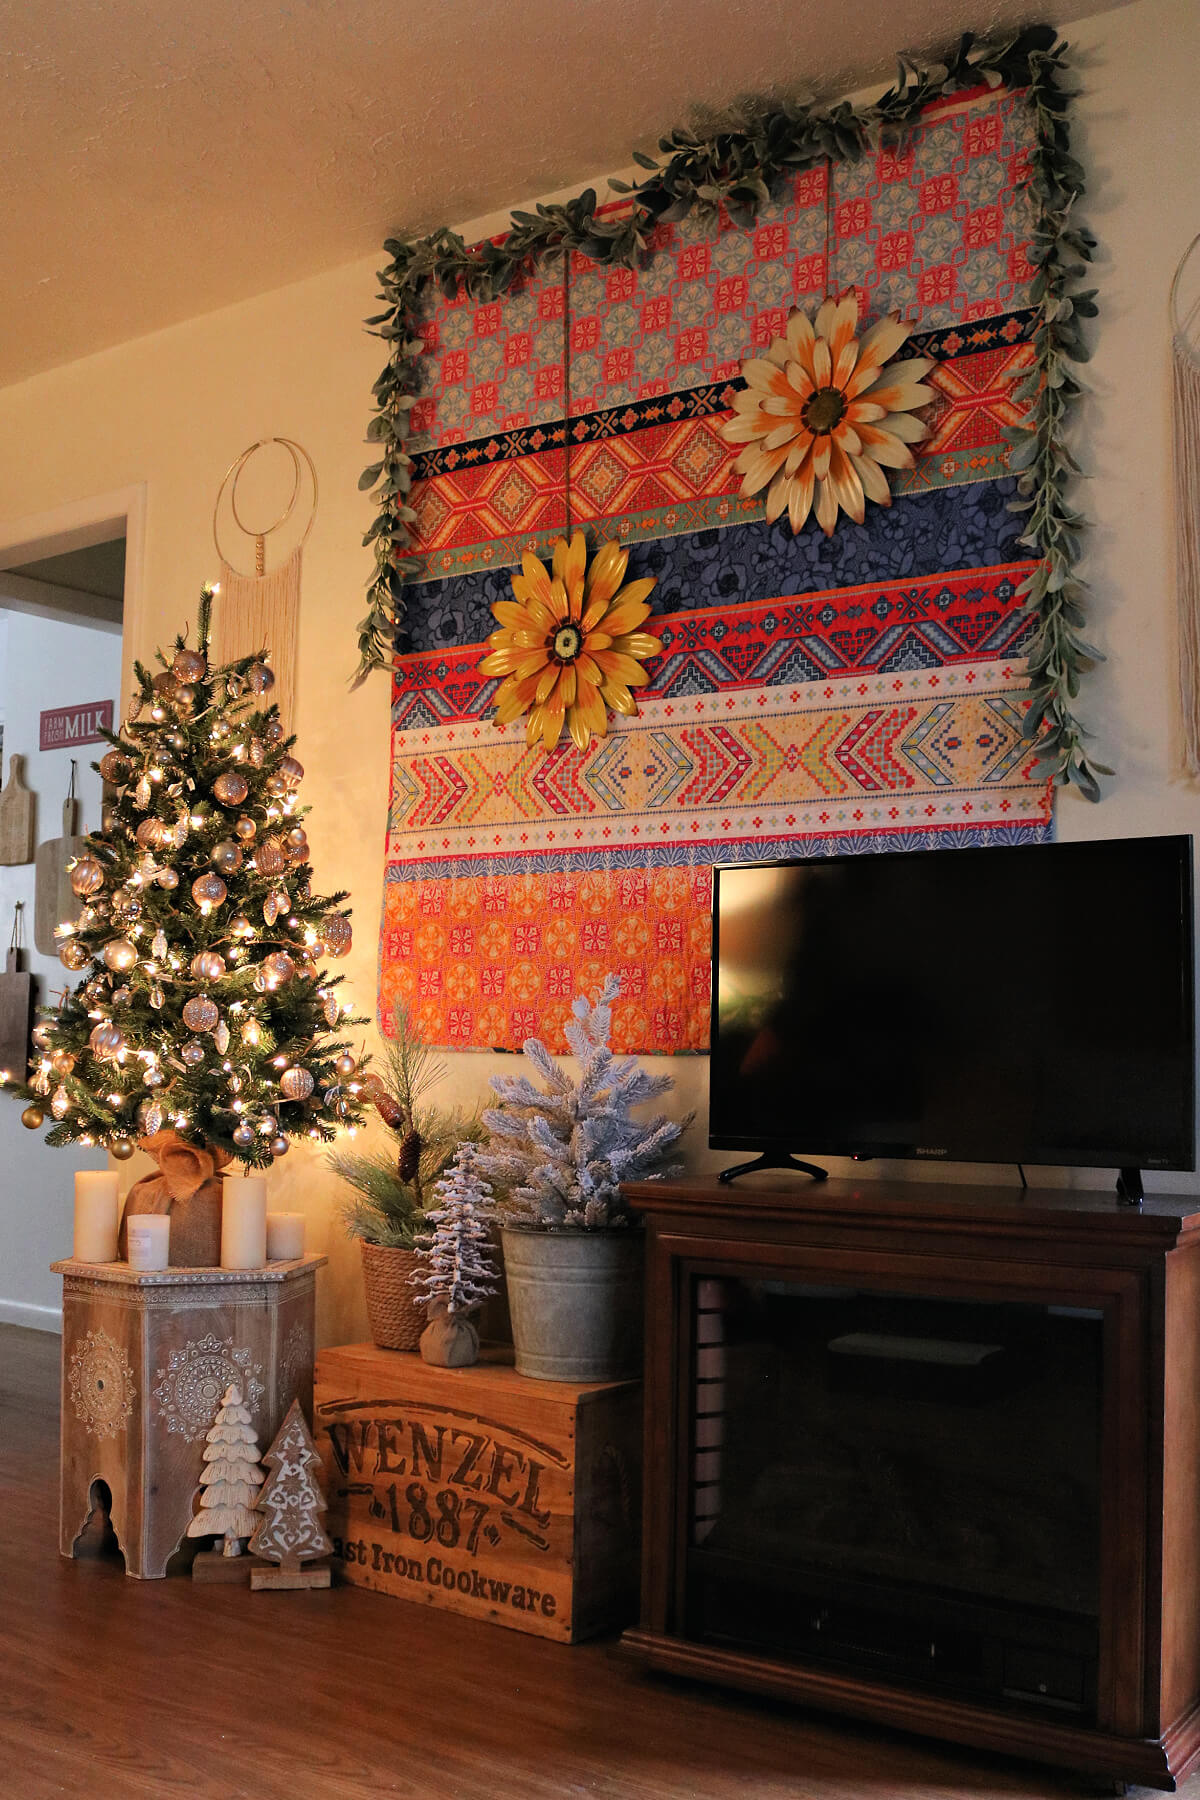 Improving The Look Of A Christmas Tree Close To A TV